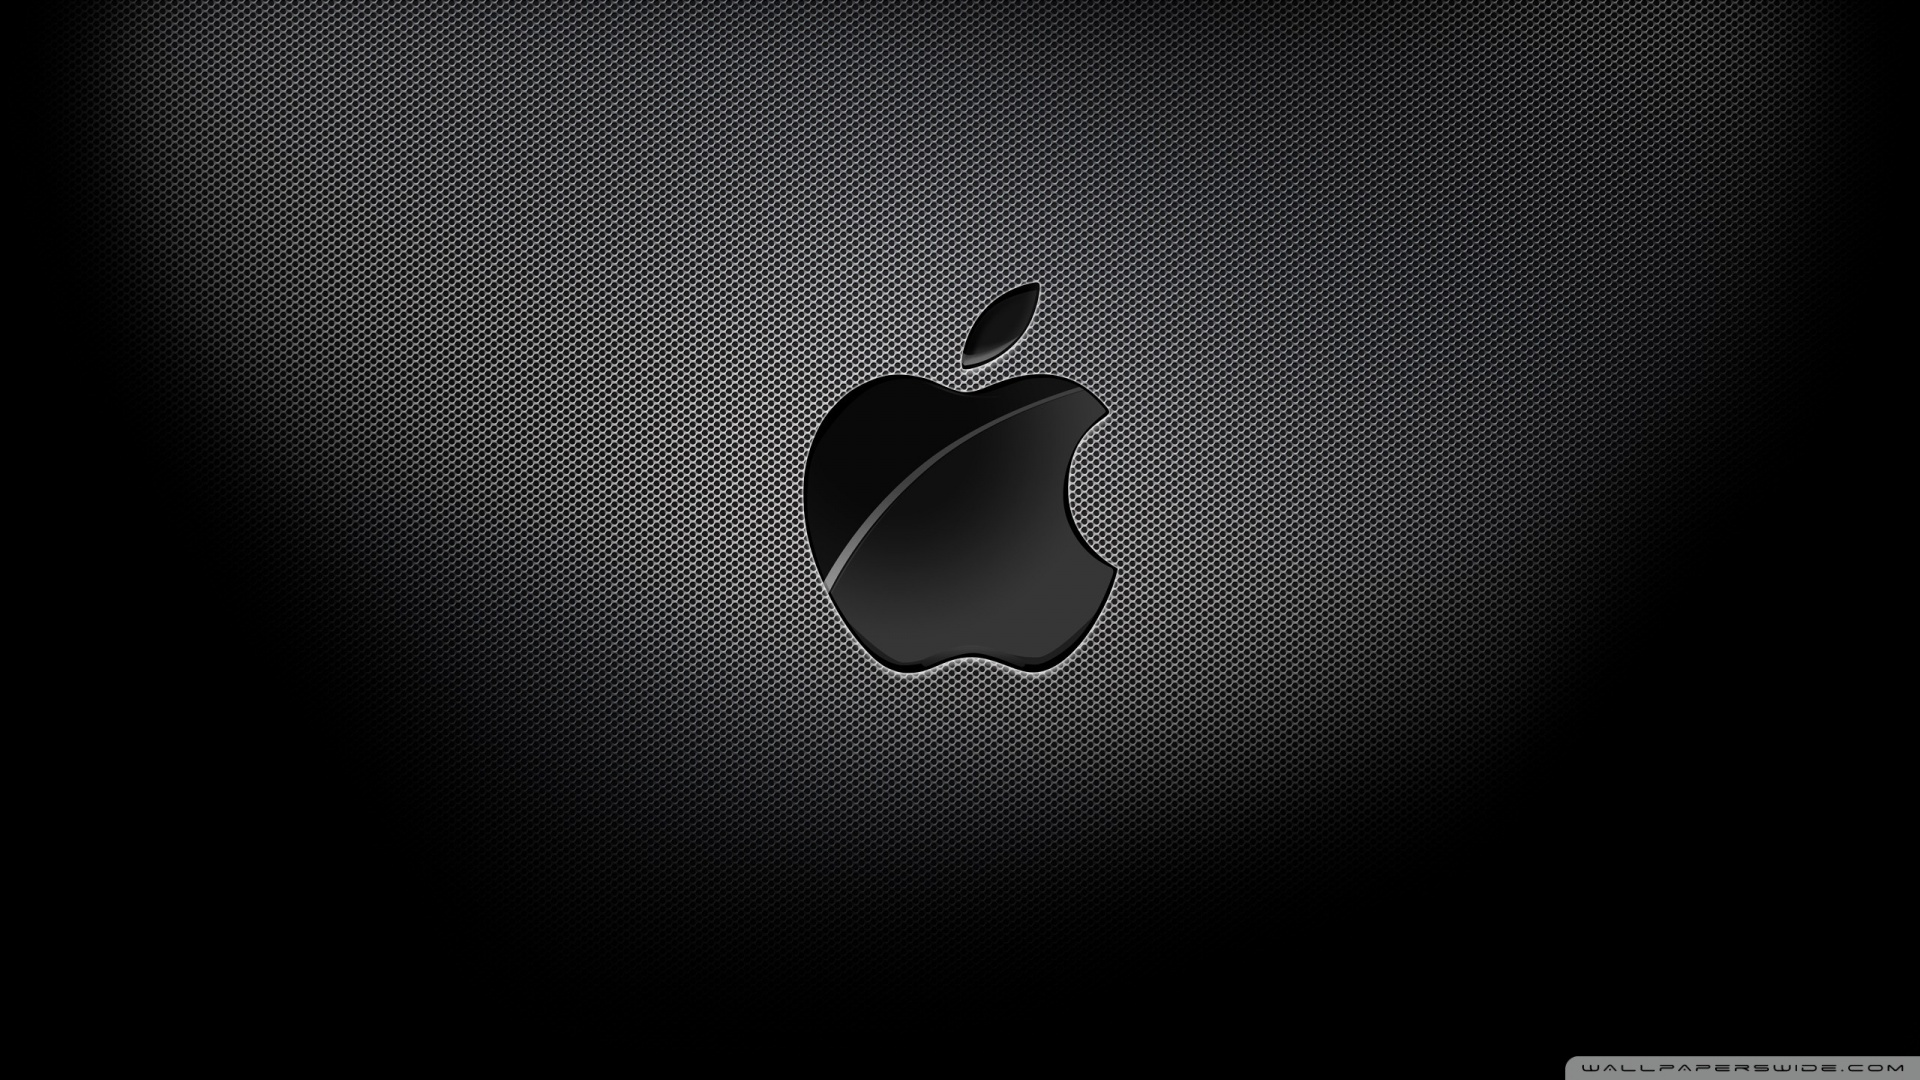 Download Apple HD Wallpapers For Laptop Gallery